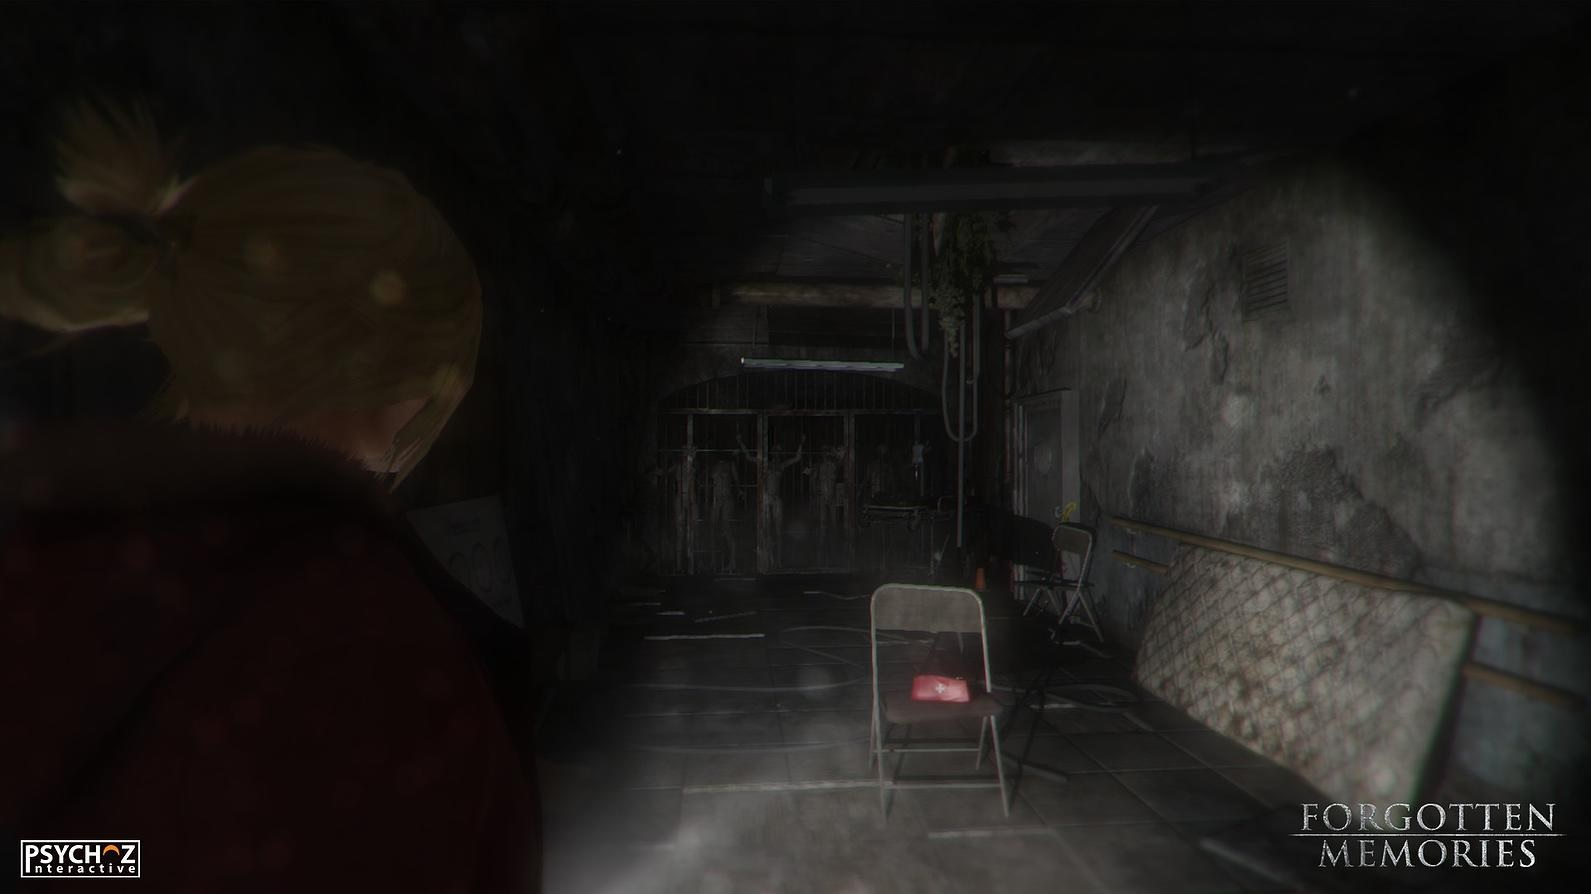 Forgotten Memories recalls the classic horror games of the past, out now on iOS